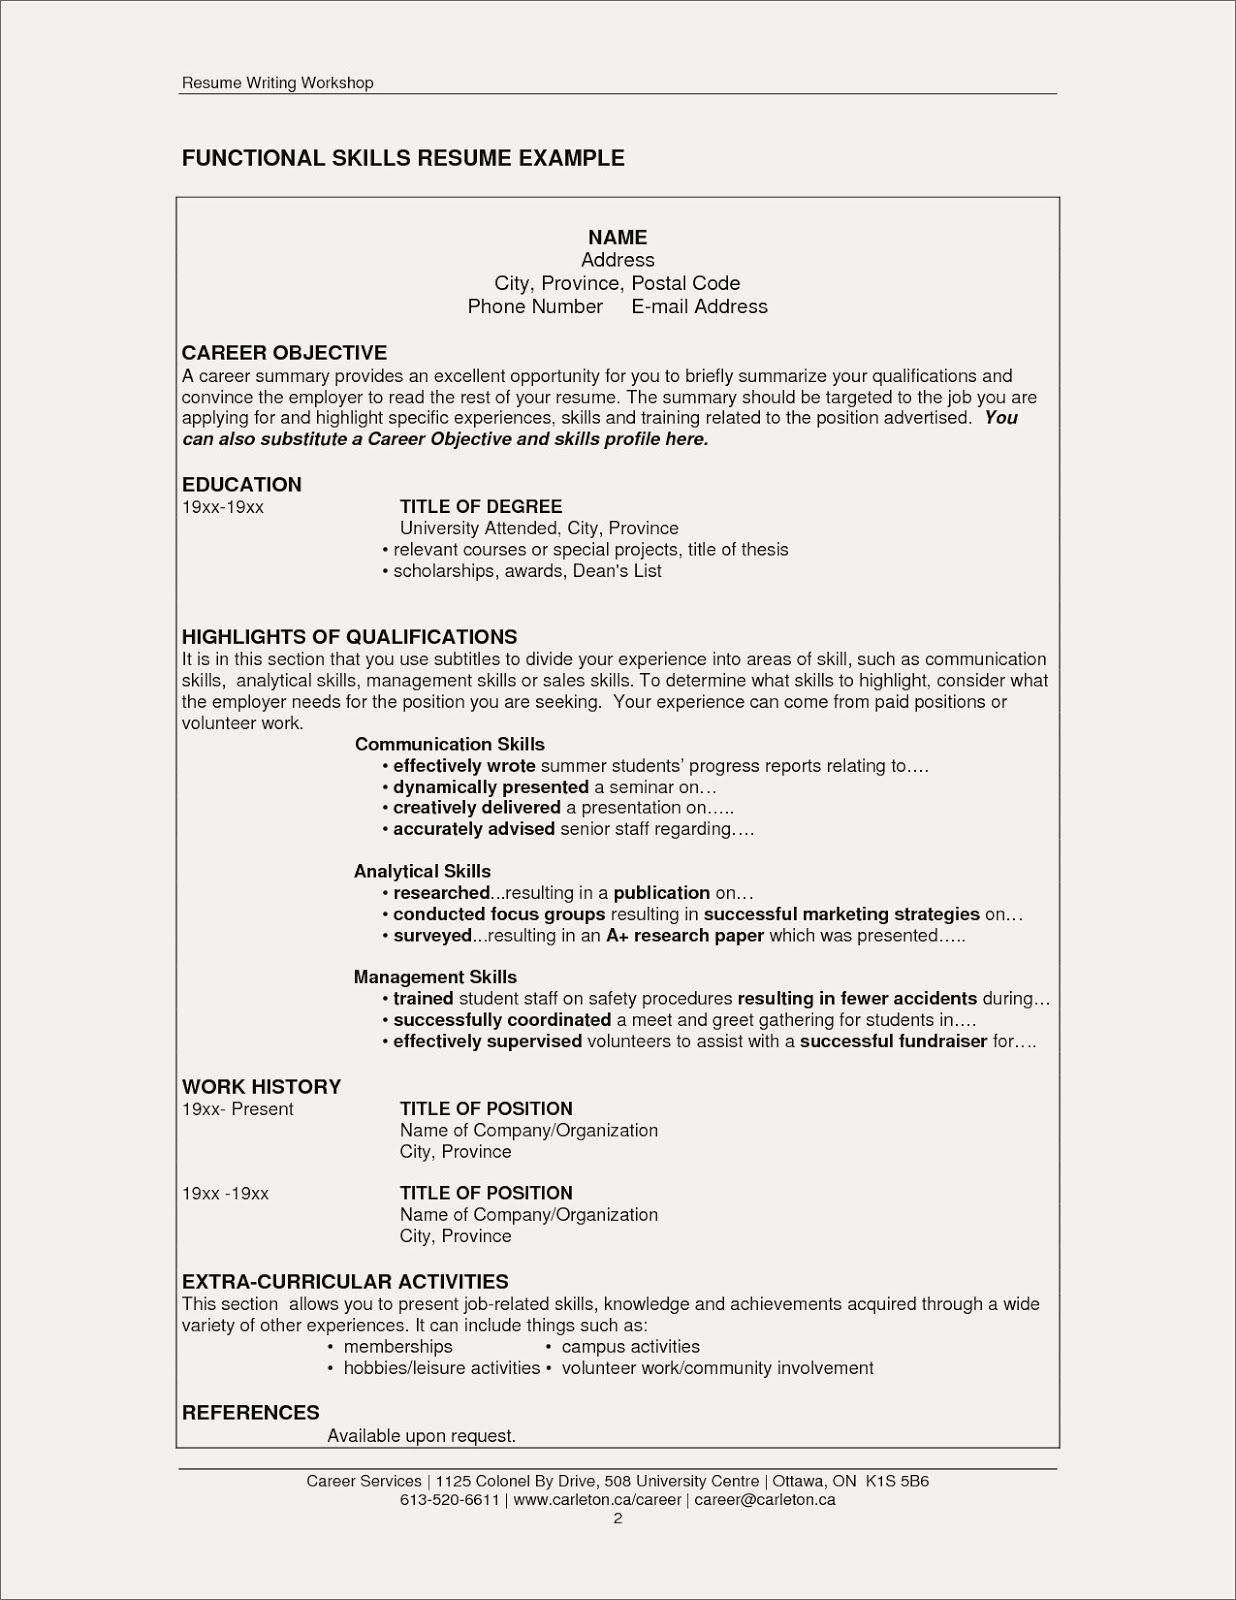 restaurant manager resume sample, restaurant manager